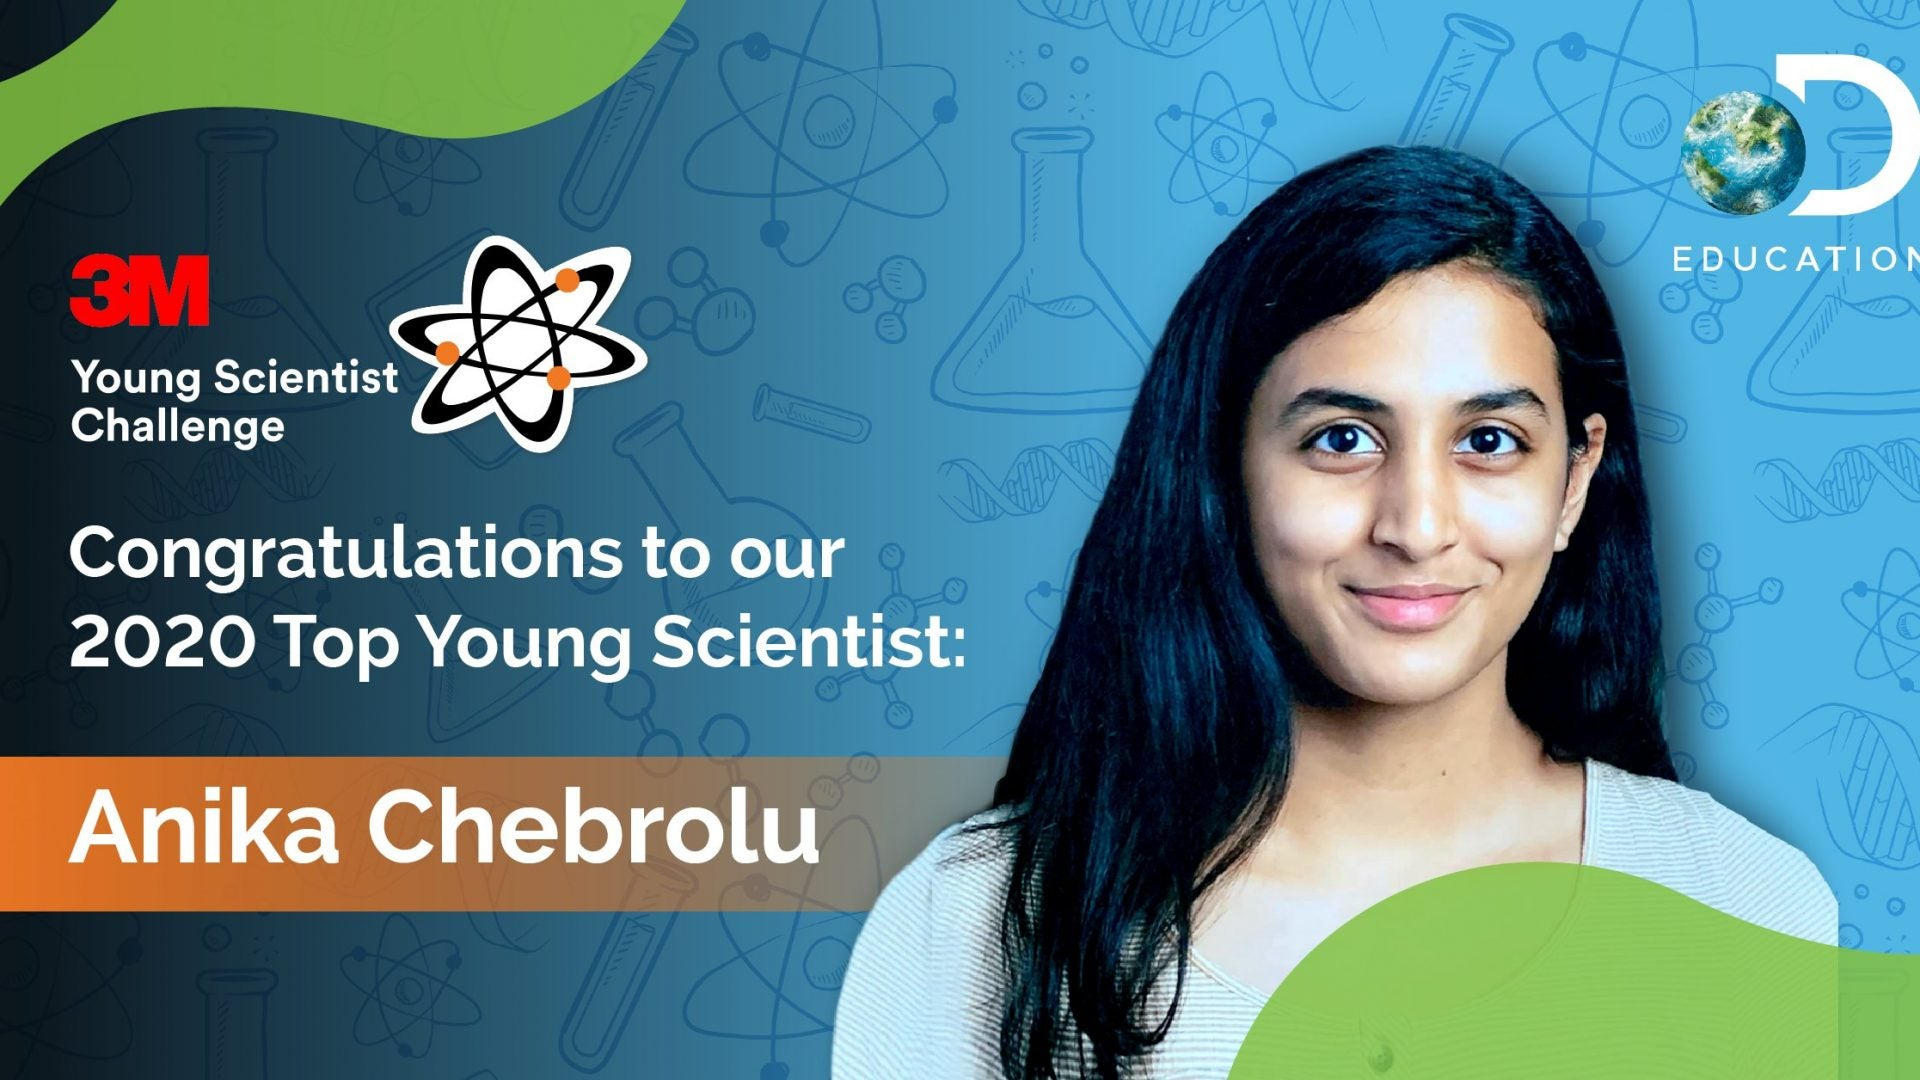 Texas Girl, 14, Wins Young Scientist Award For Discovering Potential COVID-19 Treatment